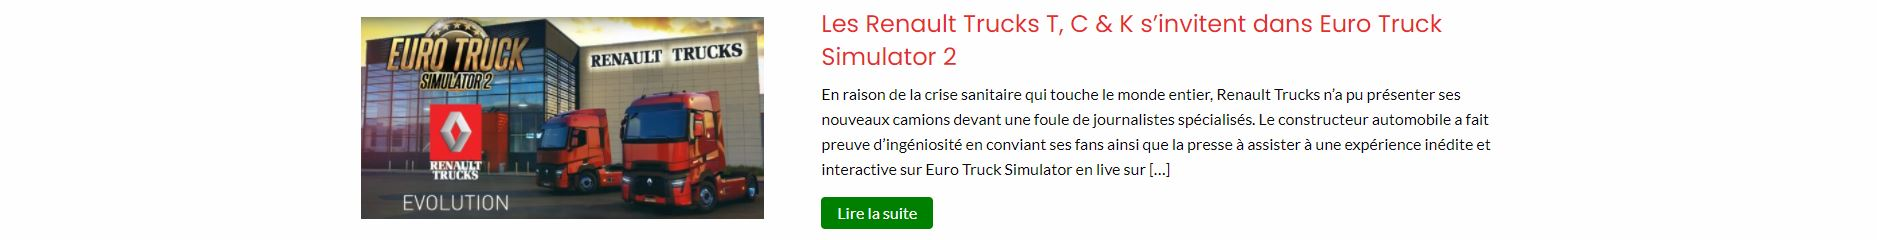 Article renault EURO TRUCK